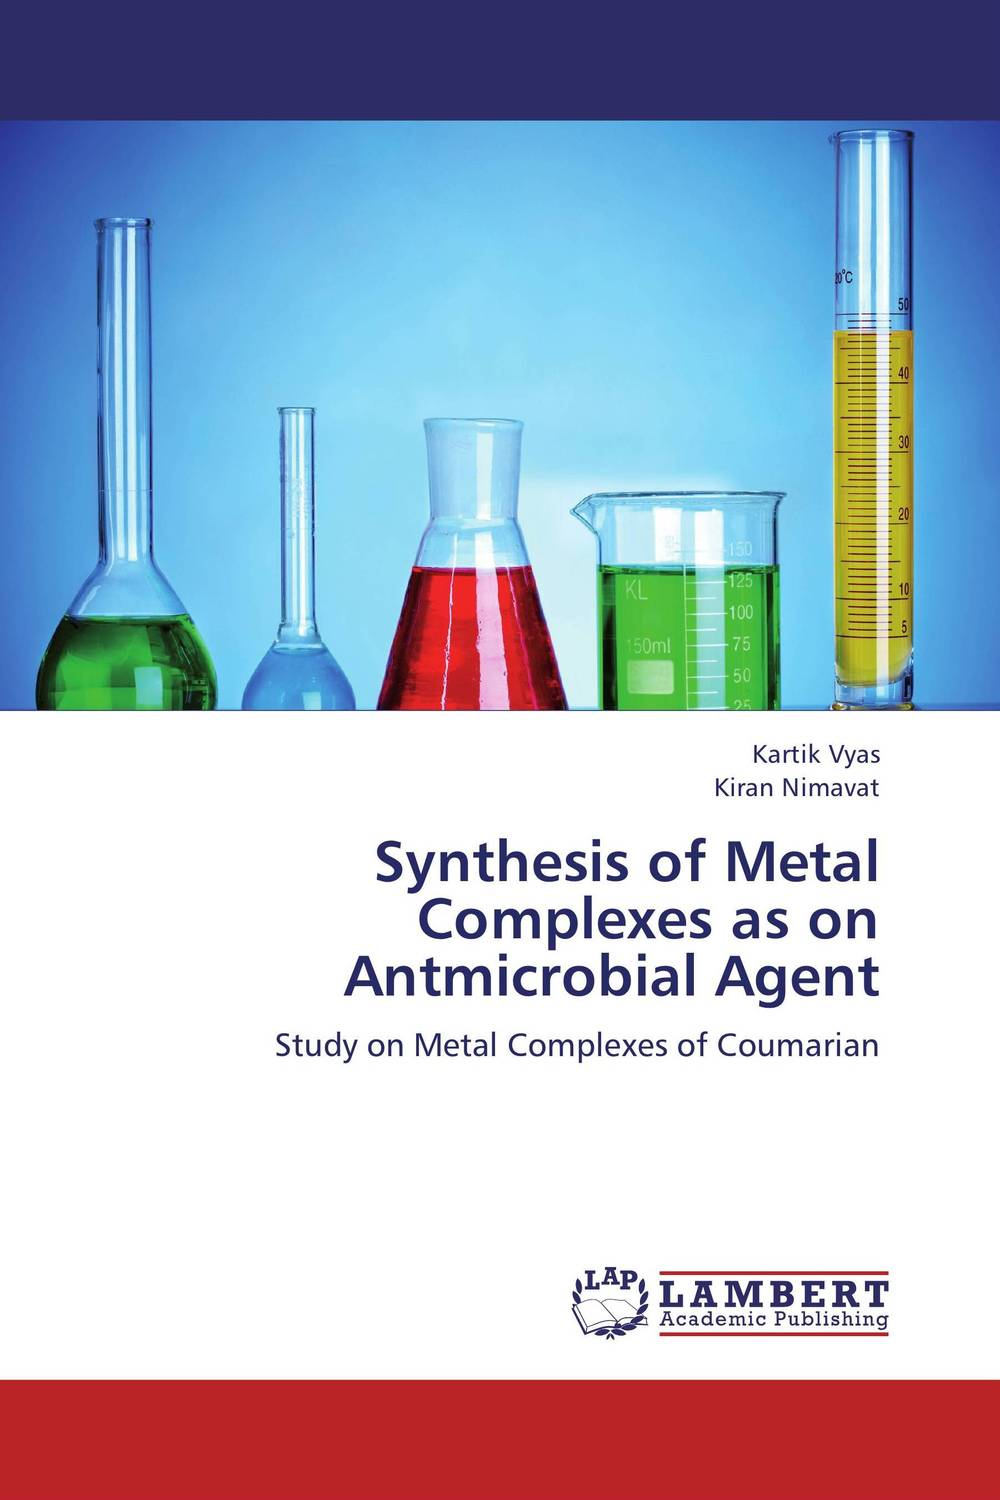 Synthesis of Metal Complexes as on Antmicrobial Agent d rakesh s s kalyan kamal and sumair faisal ahmed synthesis